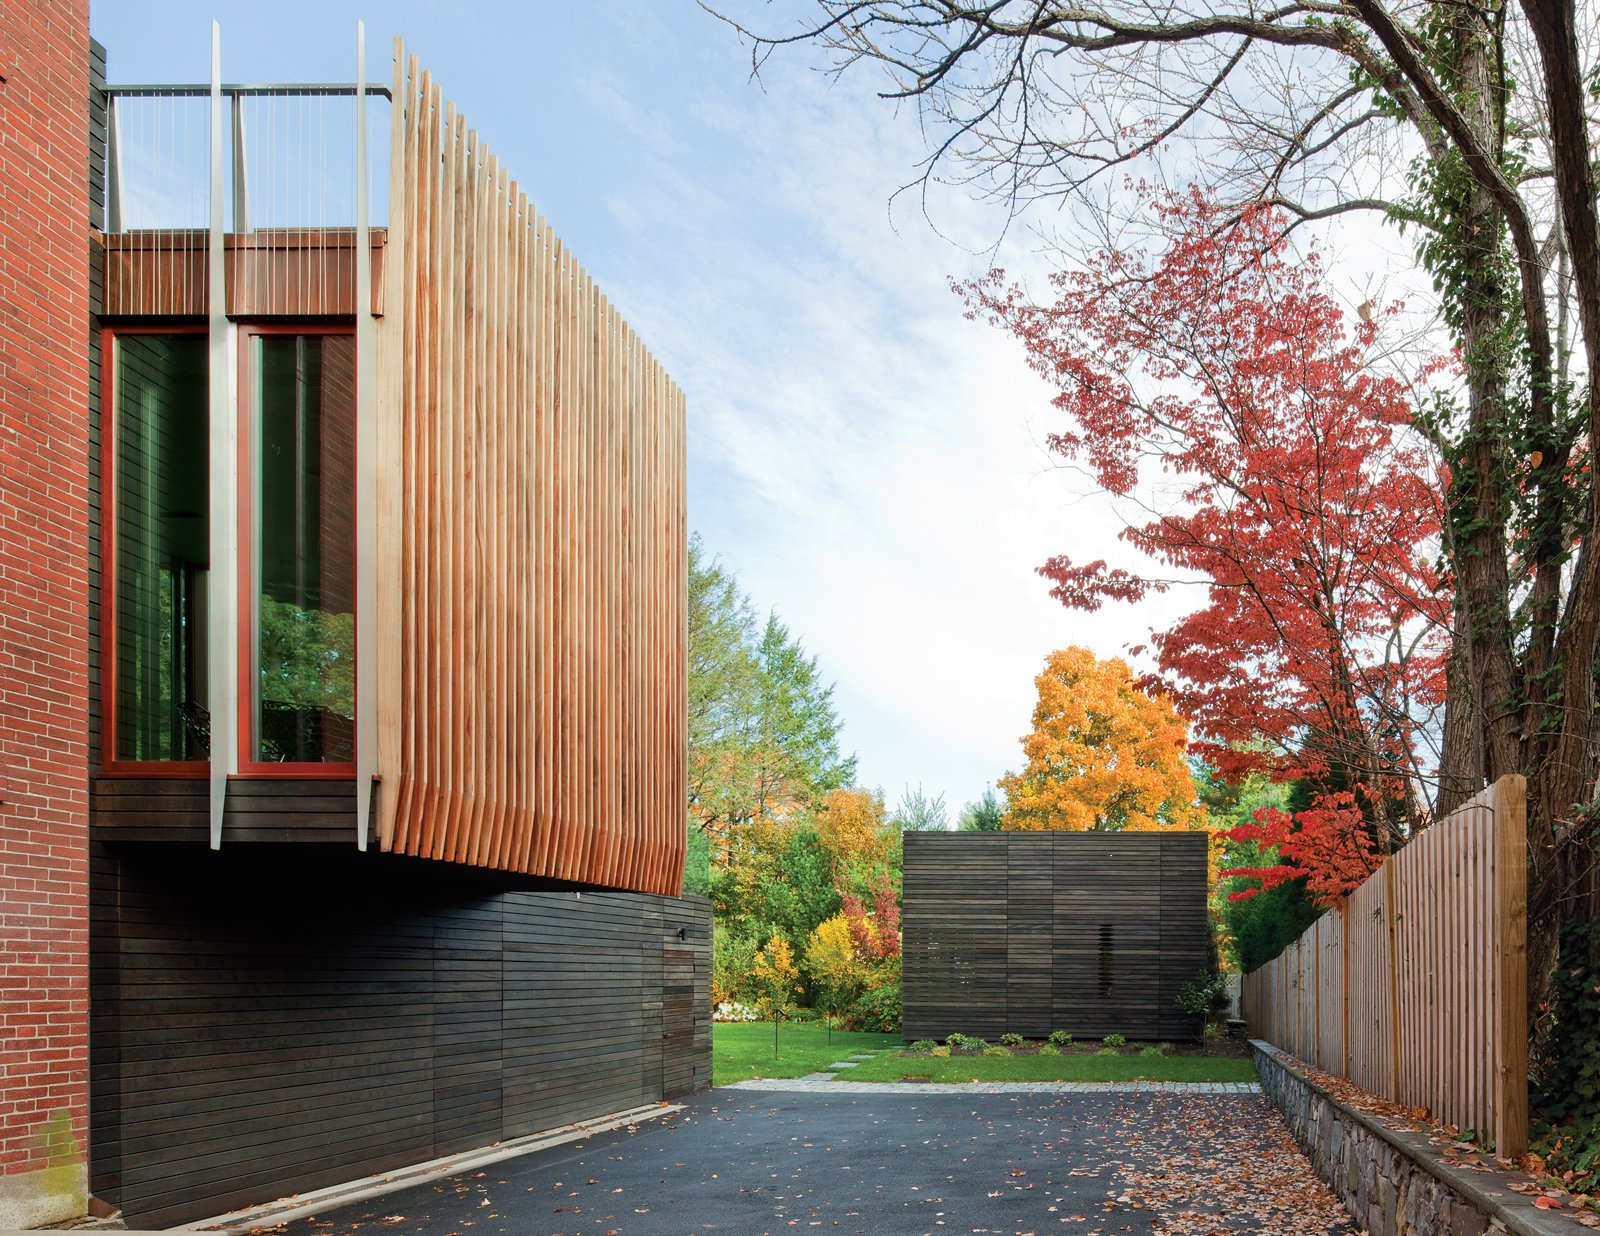 """Architecture firm NADAAA planned a striated addition to a brick neo-Georgian house in Boston with the owners' primary goal in mind: to engage with the outdoors year-round. The walls of the rear kitchen and living space are virtually all glass, allowing sight lines to the existing gardens and new pool house through a series of framed vignettes onto the backyard landscape. The glass box is bookended by uniform """"fins"""" that mark the edge of each picture window, as shown here. Photo by John Horner."""